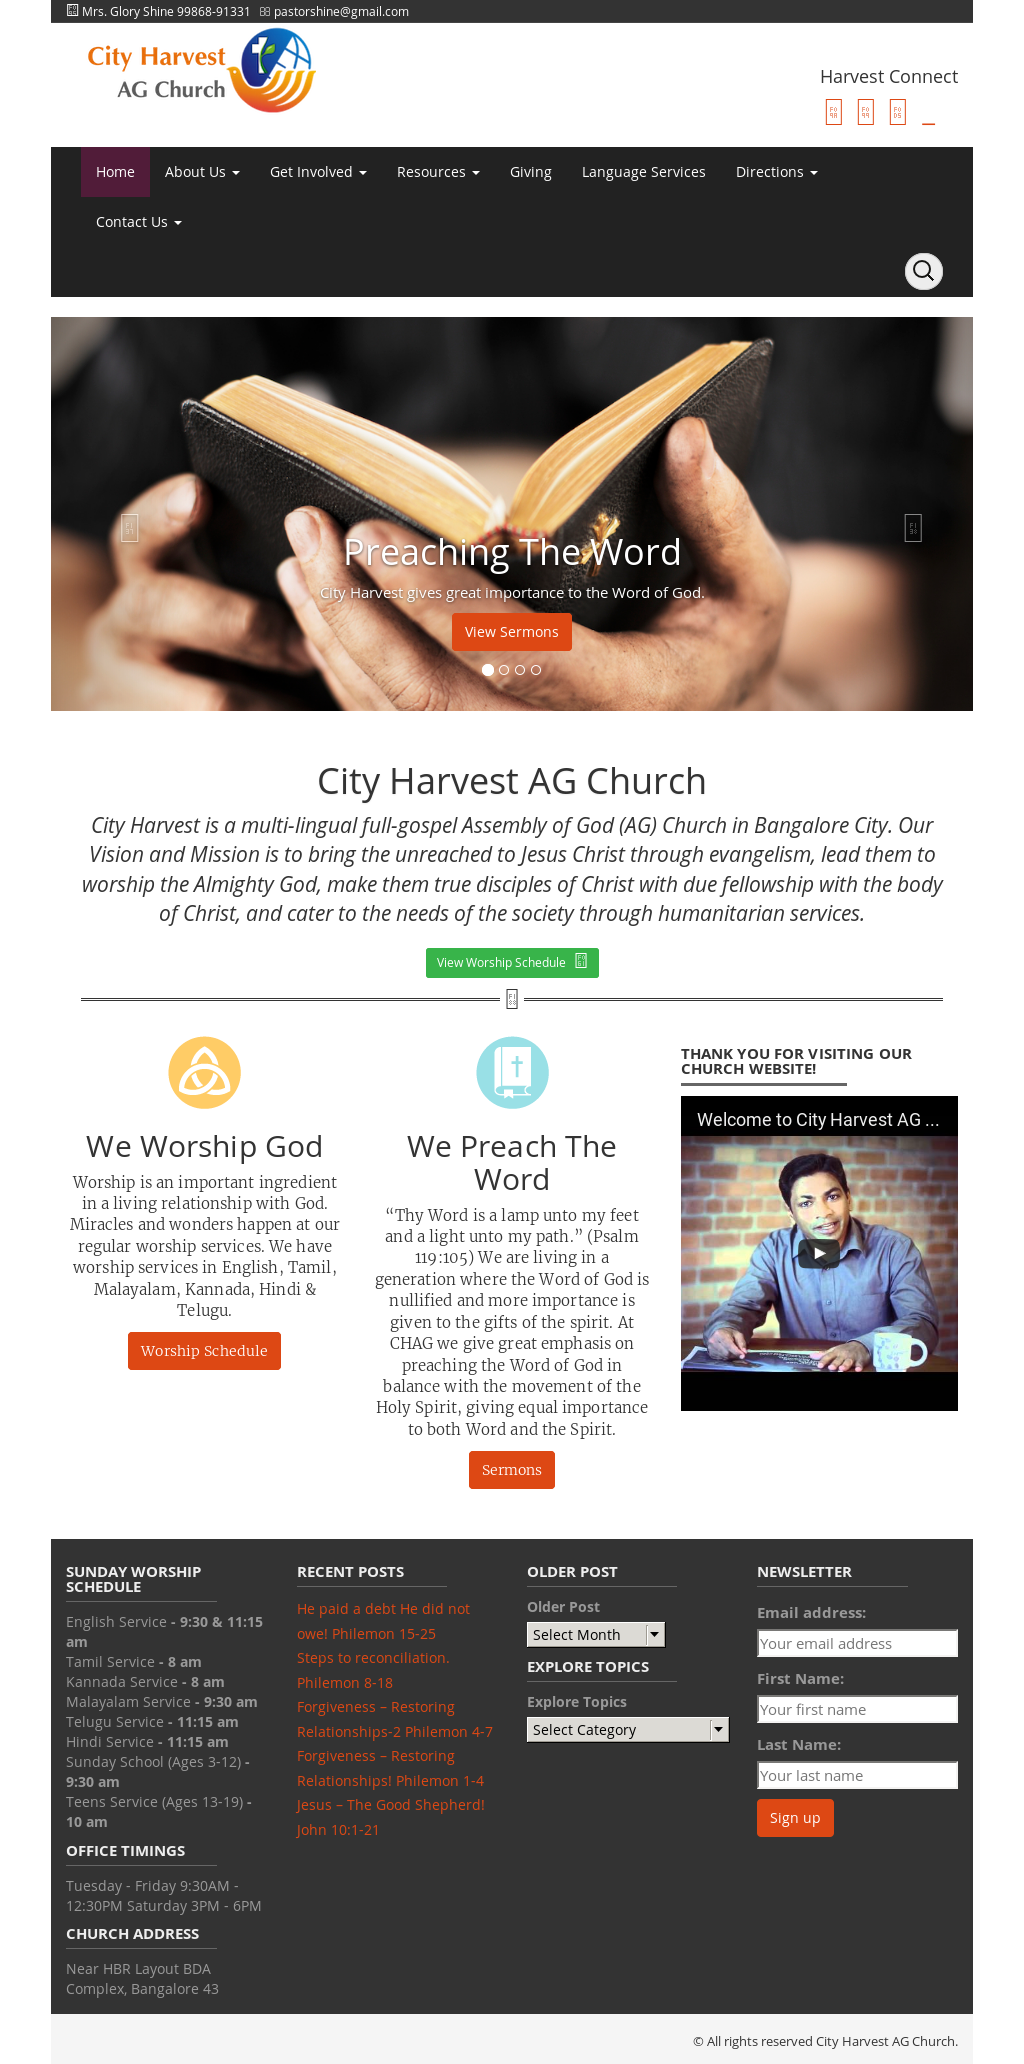 City Harvest Ag Church Competitors, Revenue and Employees